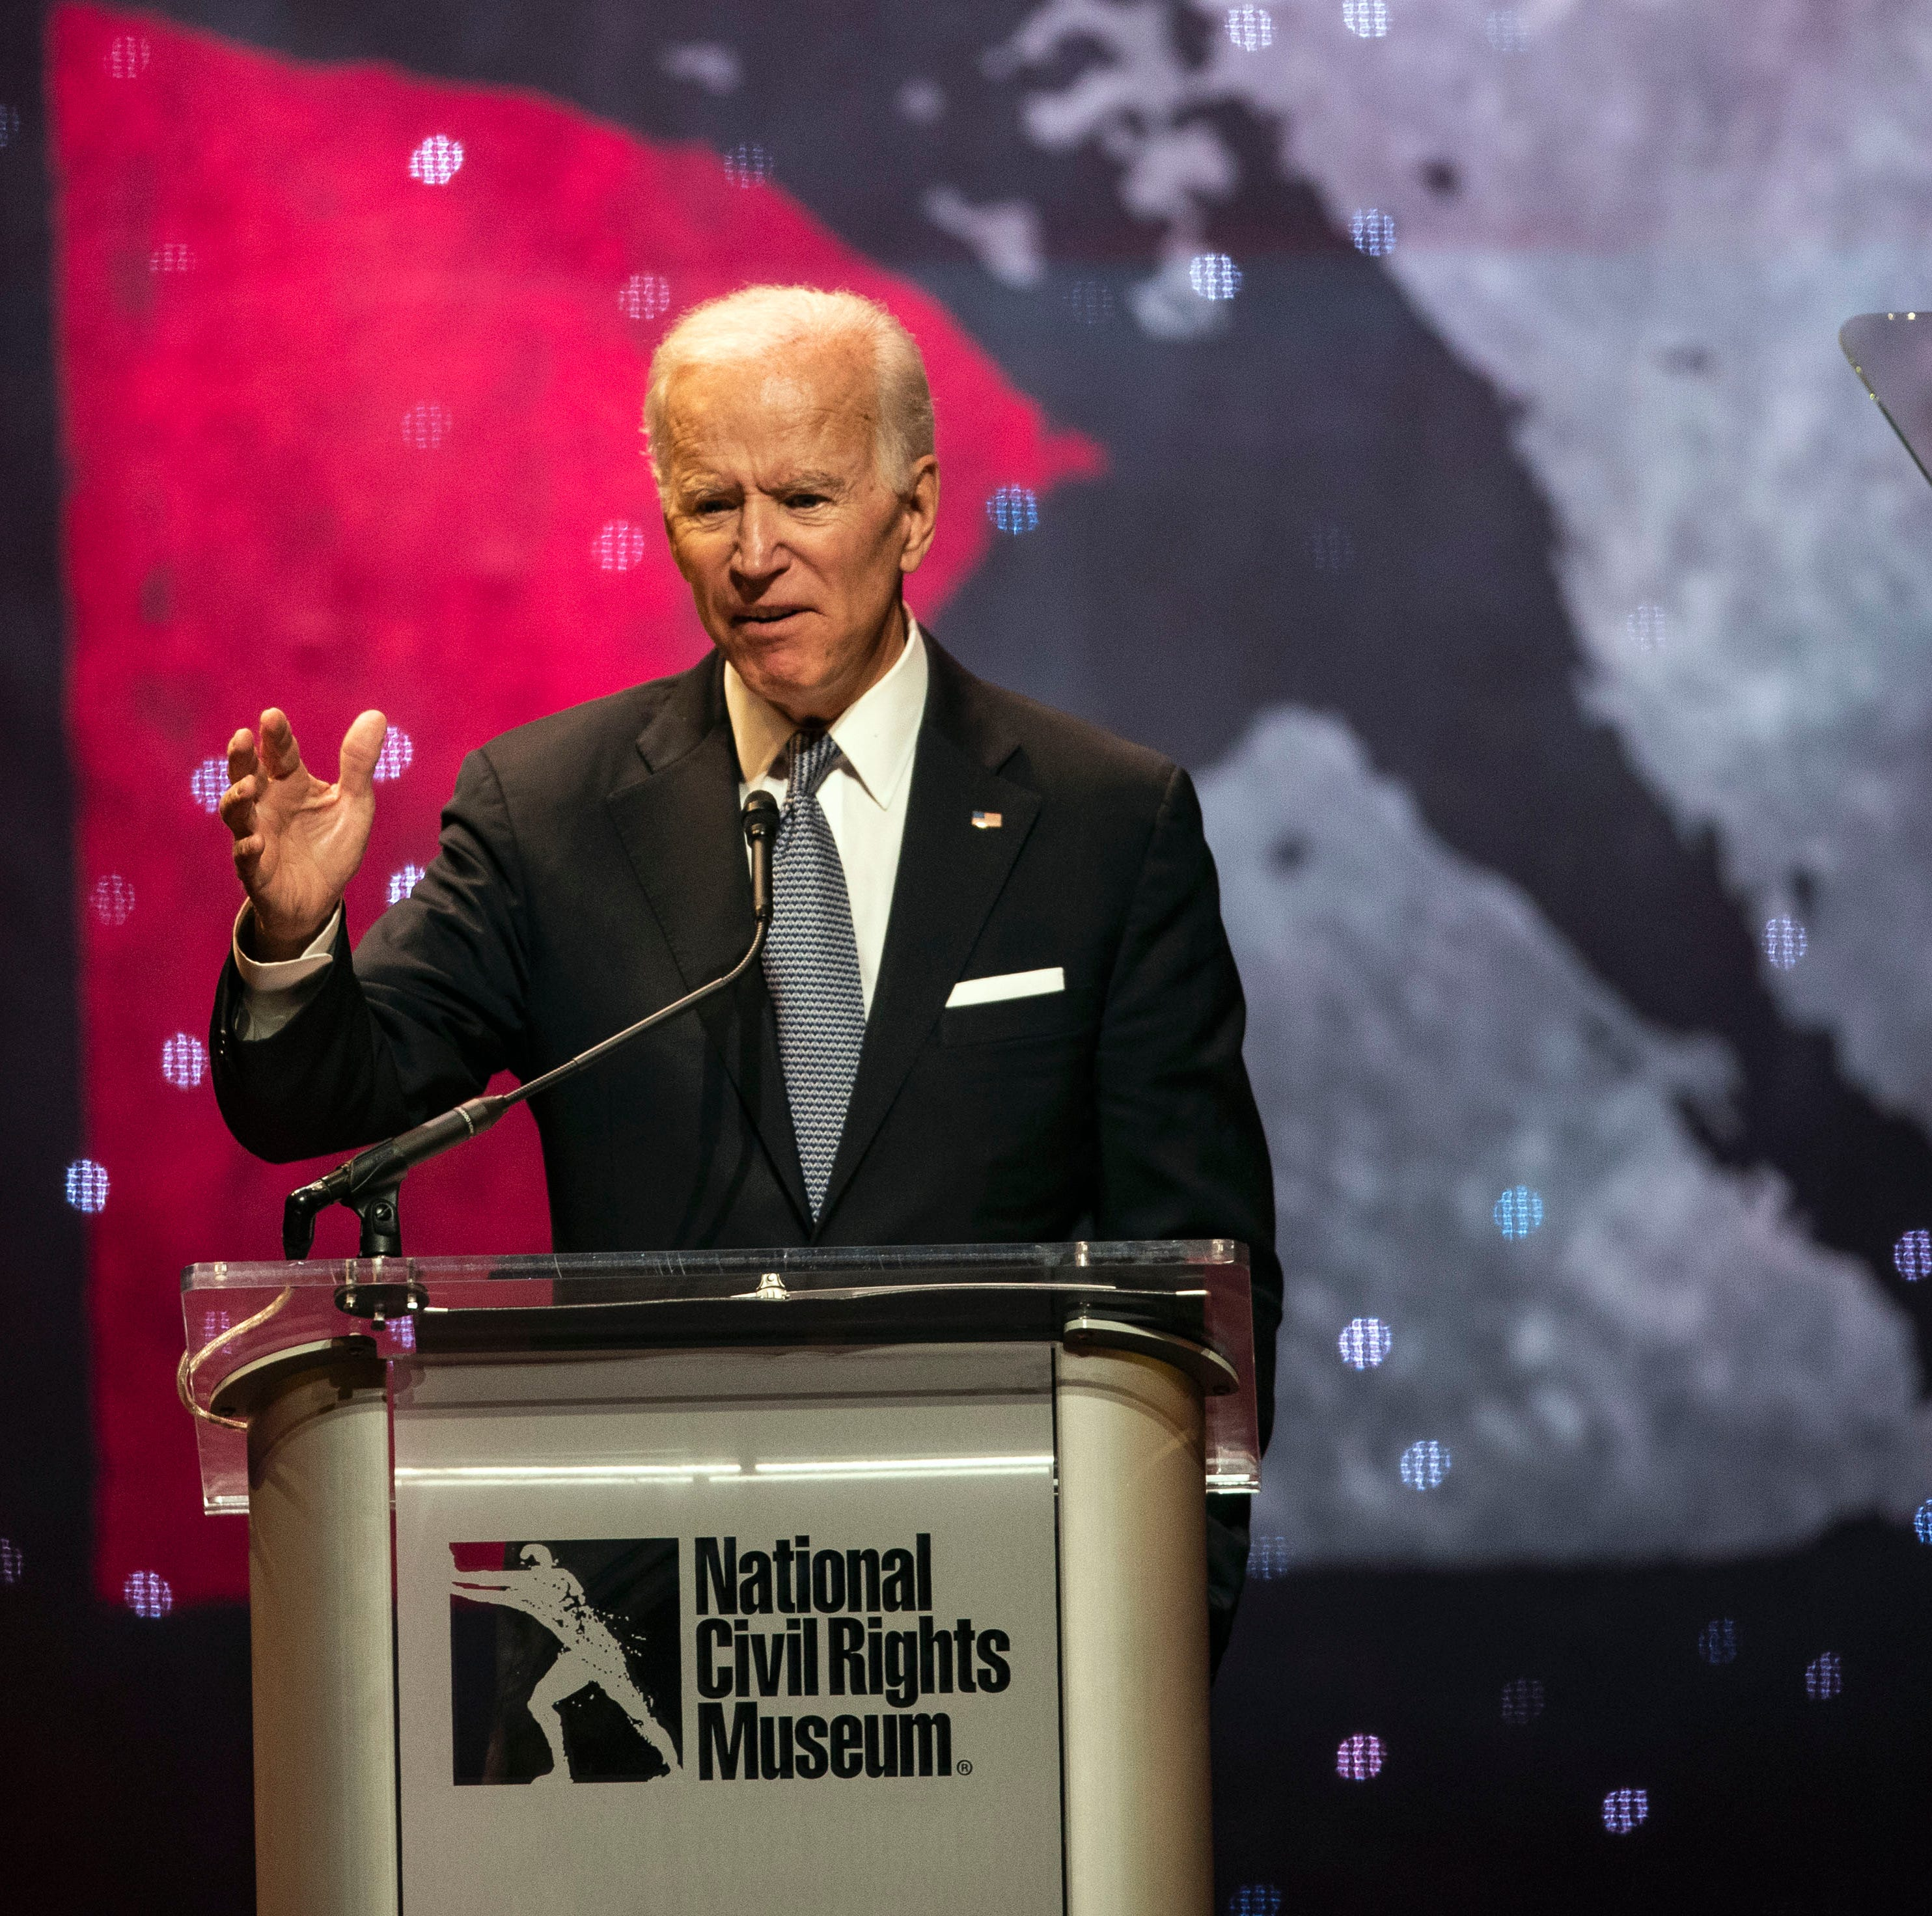 Joe Biden in Memphis: 'A battle for the soul of America' is underway